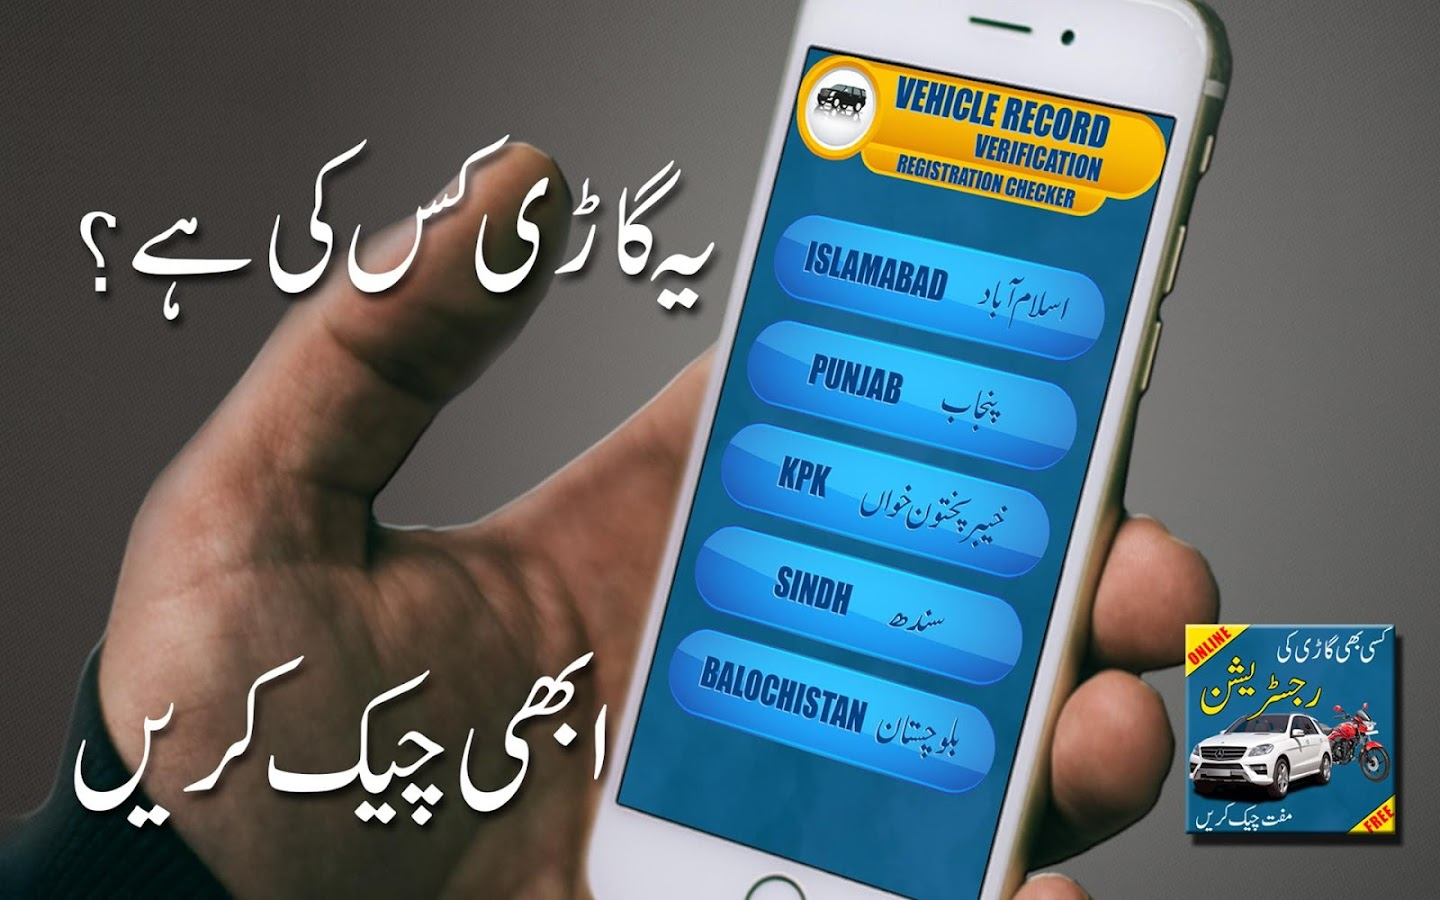 Online Vehicle Verification Car Registration Check - Android Apps ...